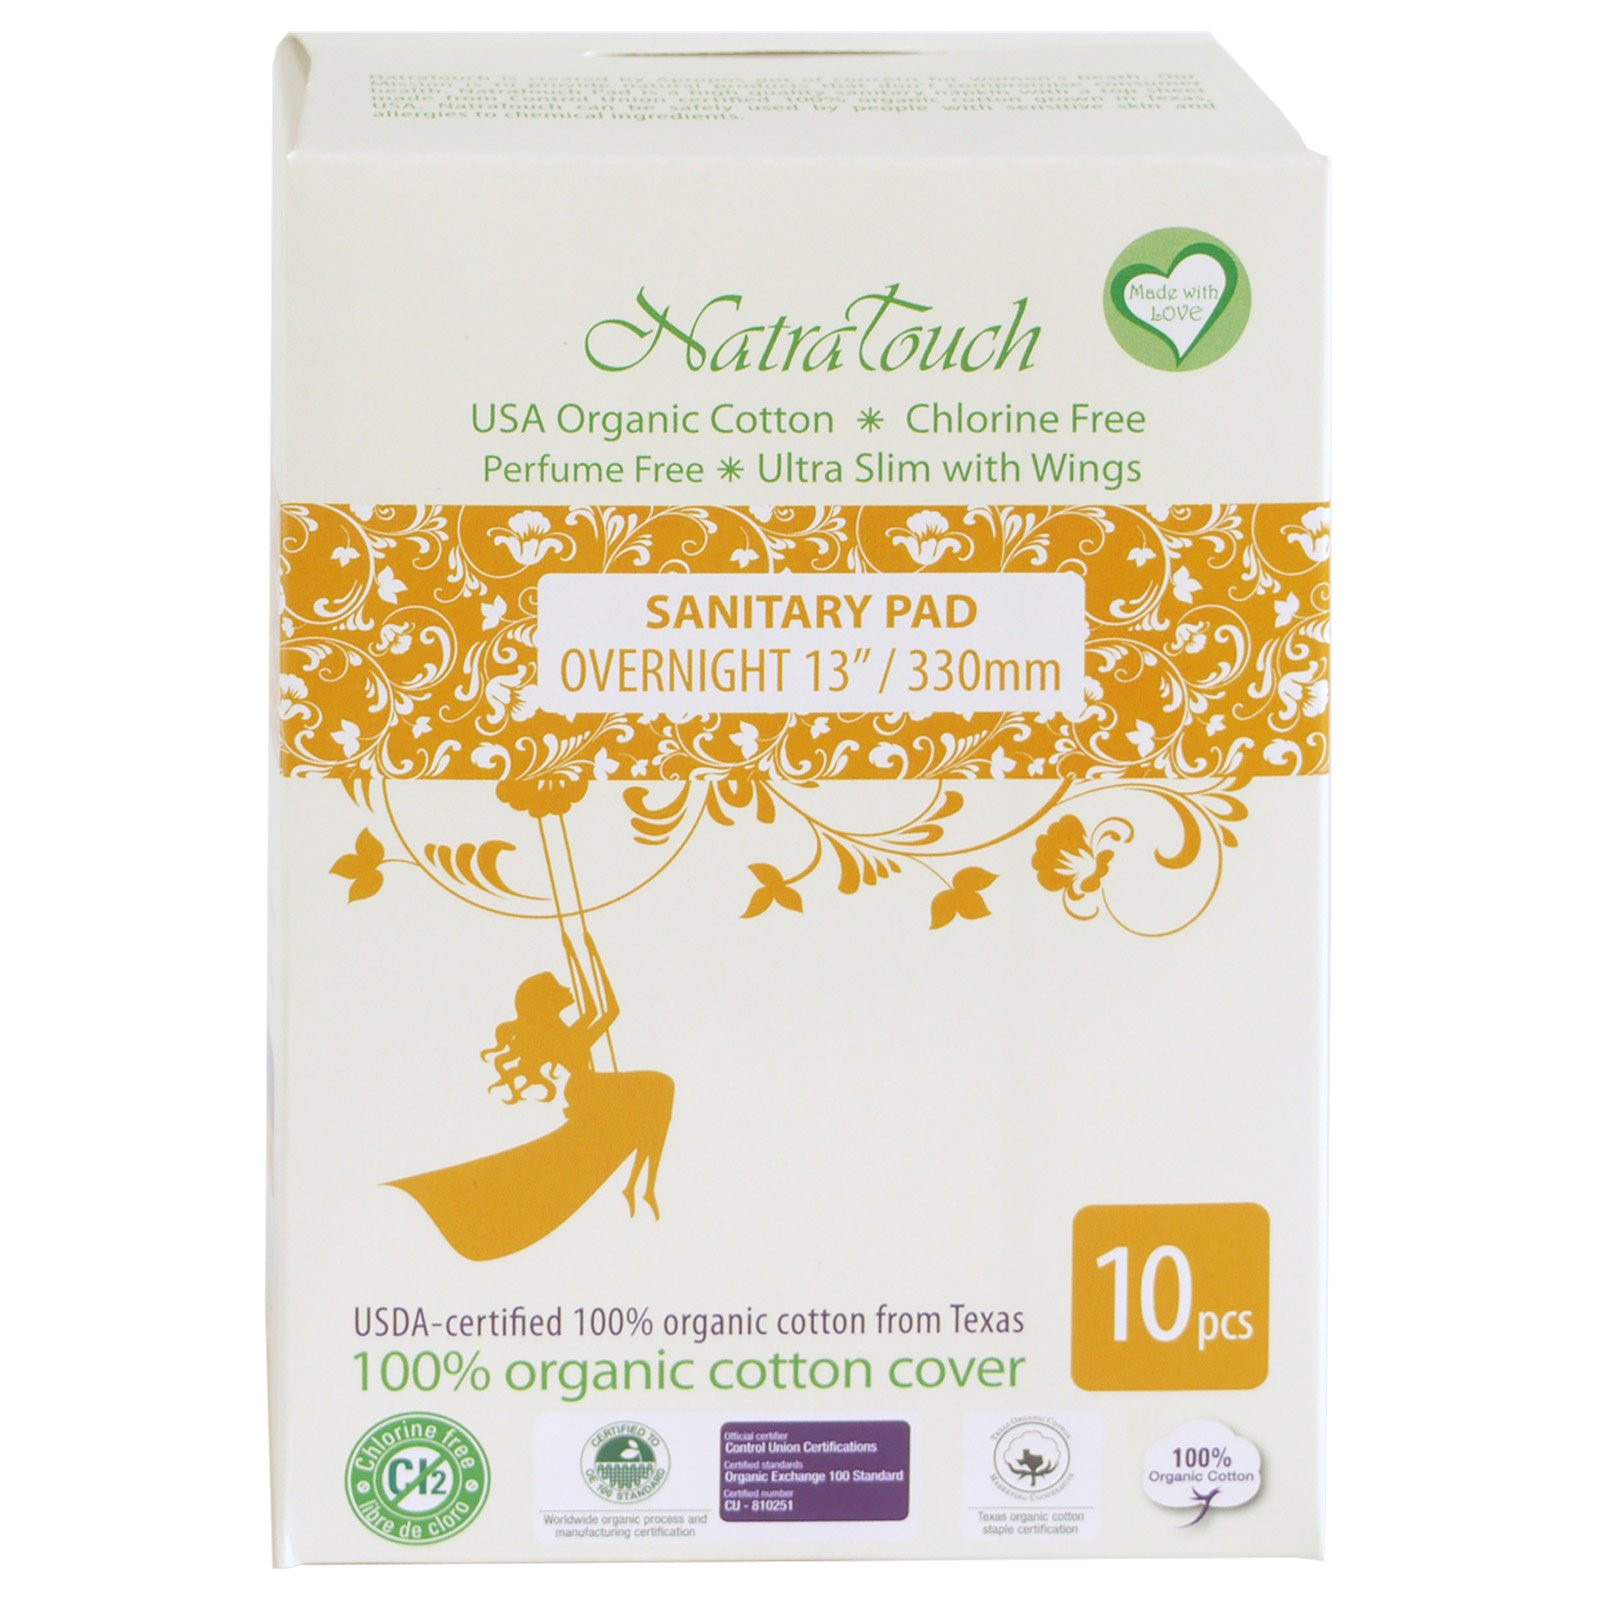 Best Pads for Postpartum Recovery Amazon Com Natratouch organic Cotton Sanitary Pads Ultra Slim with